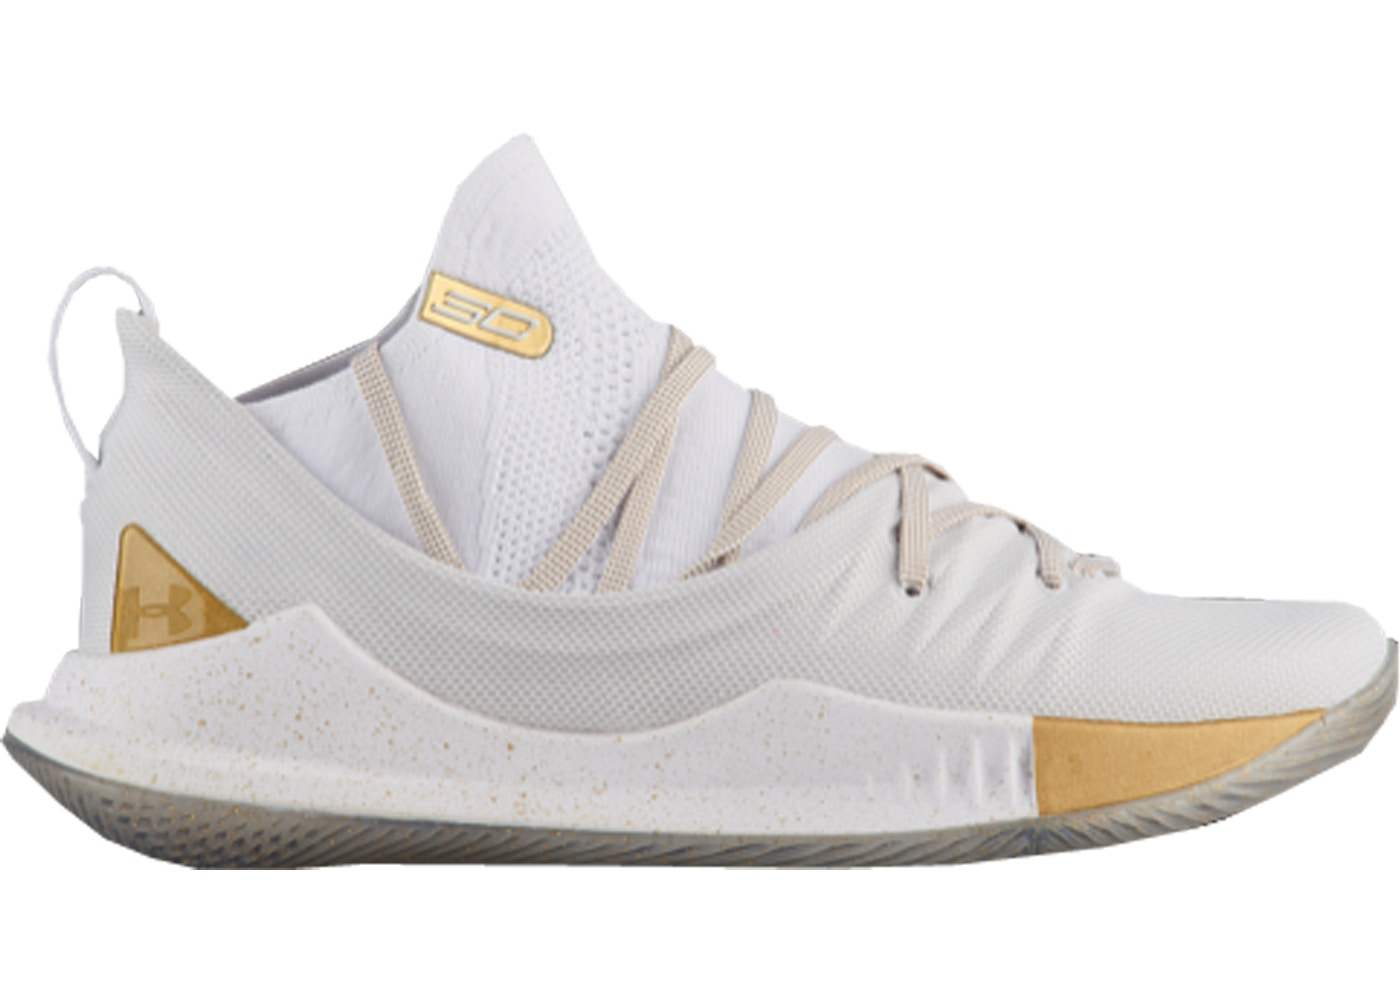 ... look out for 6c619 1ed34 Under Armour Curry 5 White Gold ... 8e8a51401